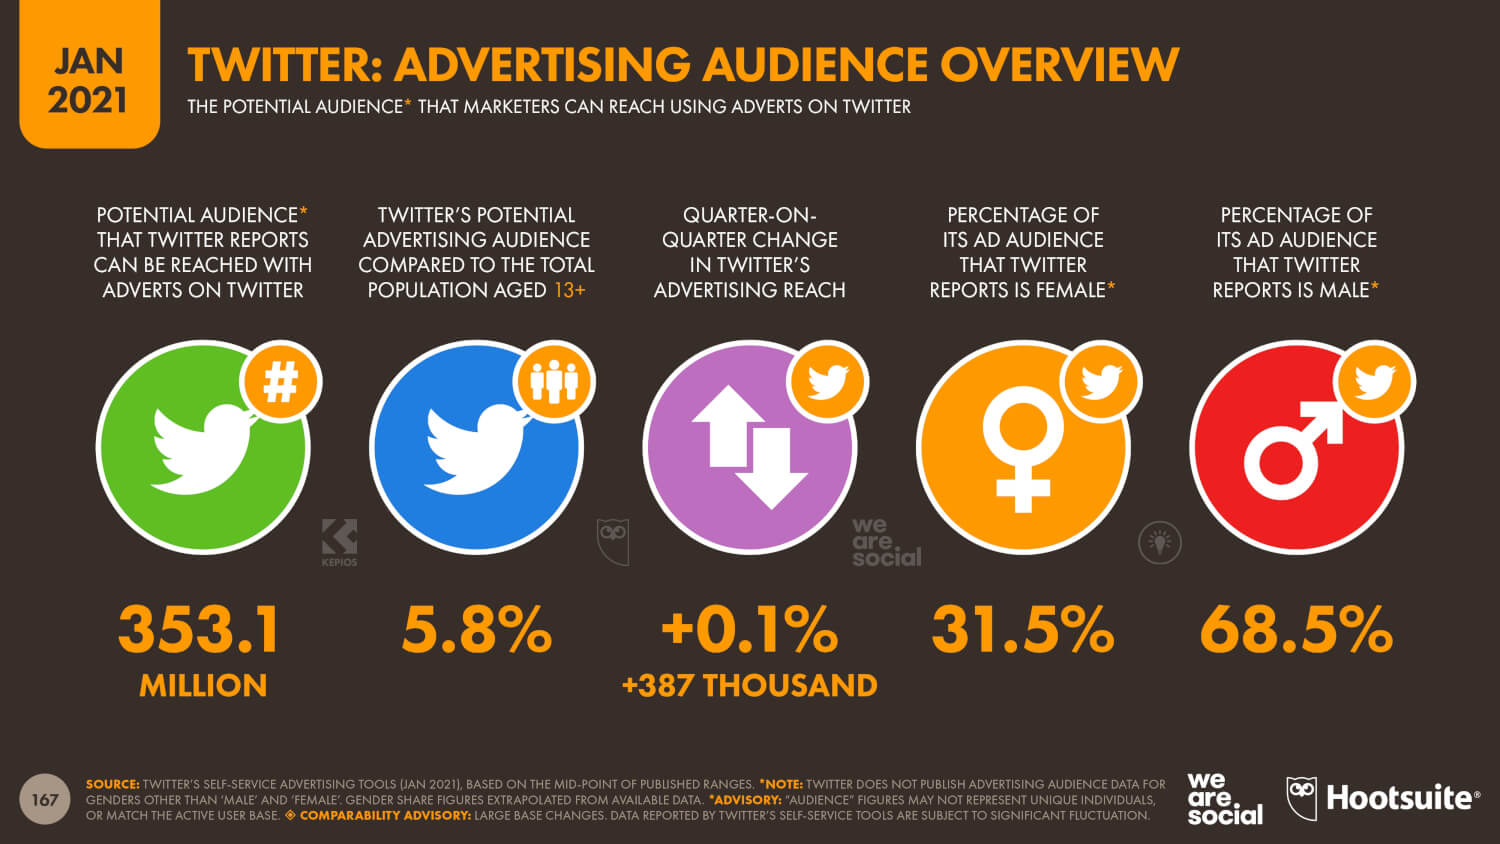 twitter advertising audience overview